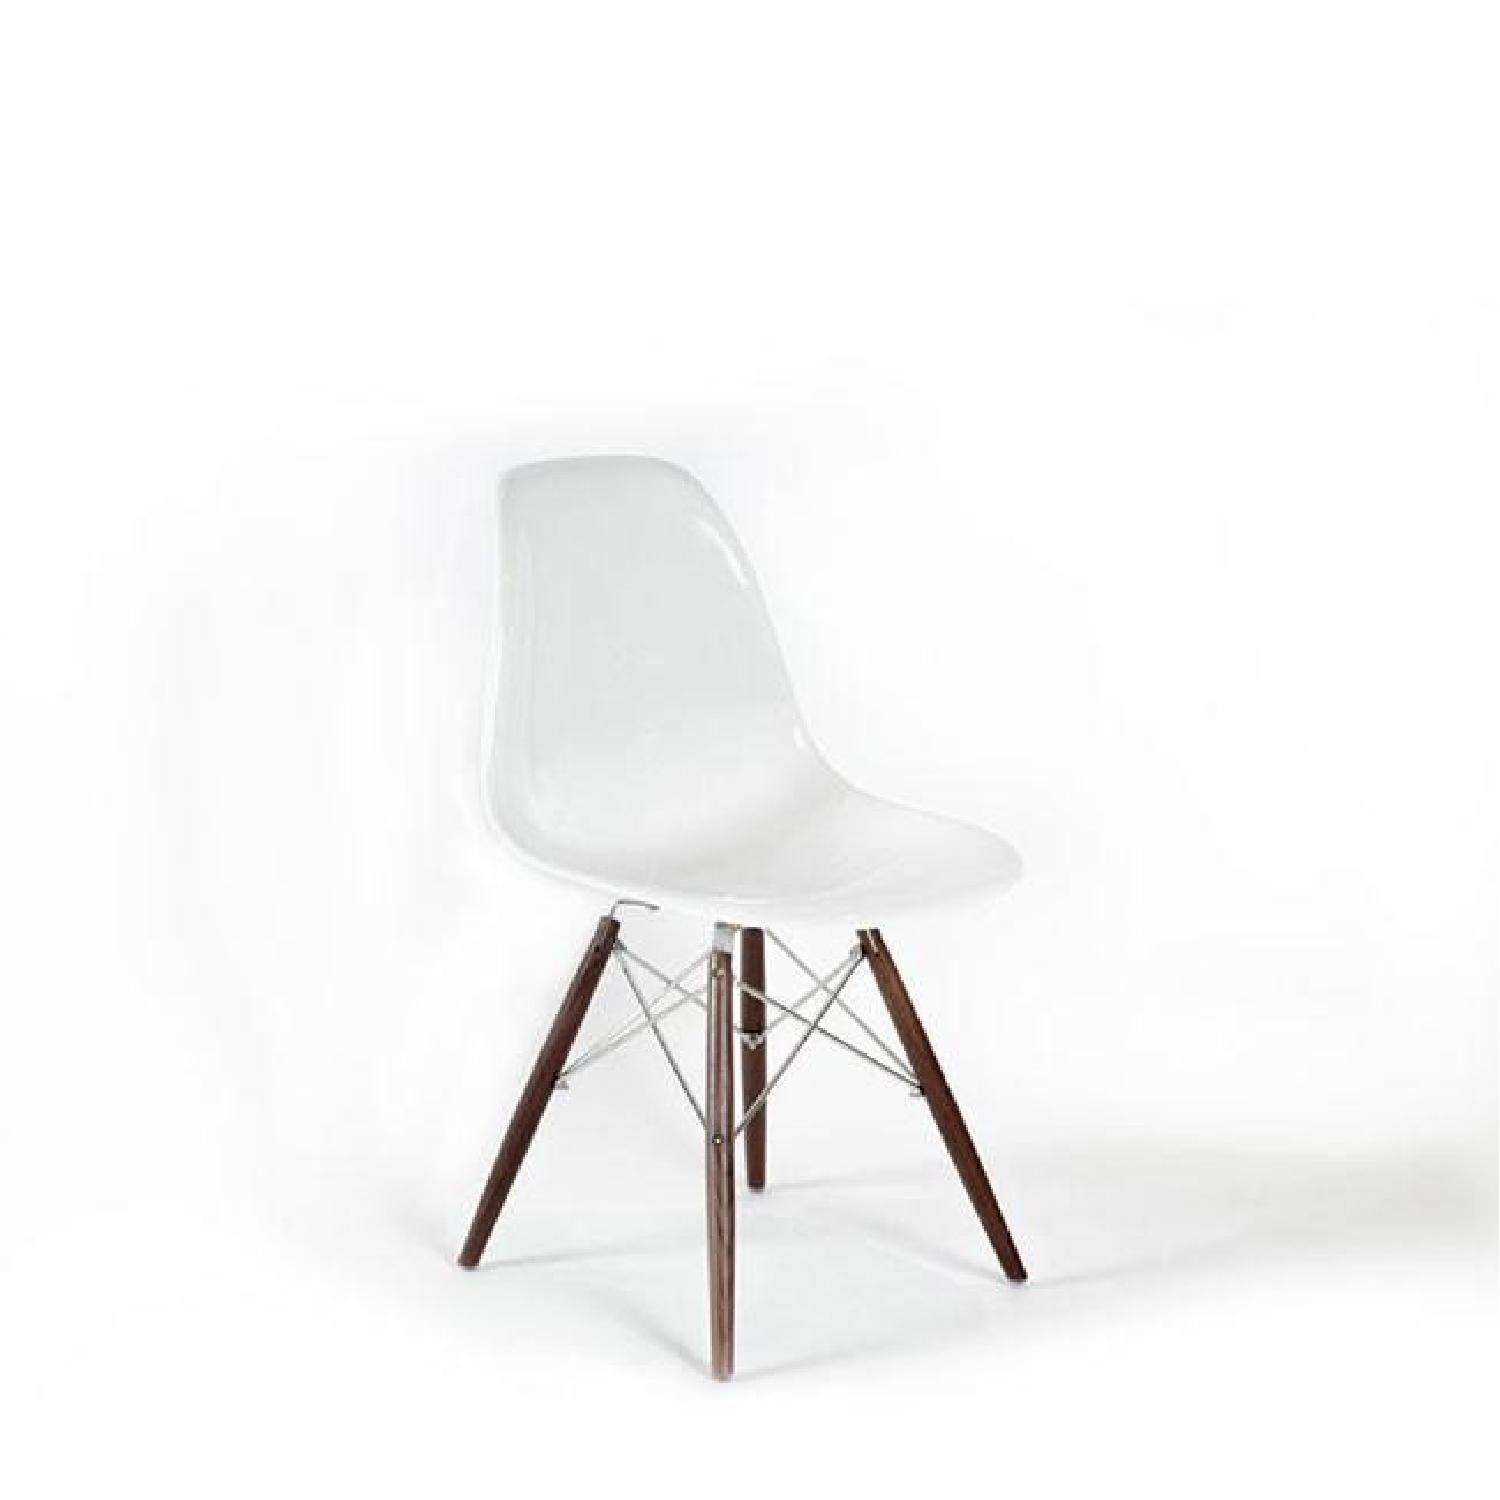 Organic Modernism Eames-Style Side Chairs - image-6